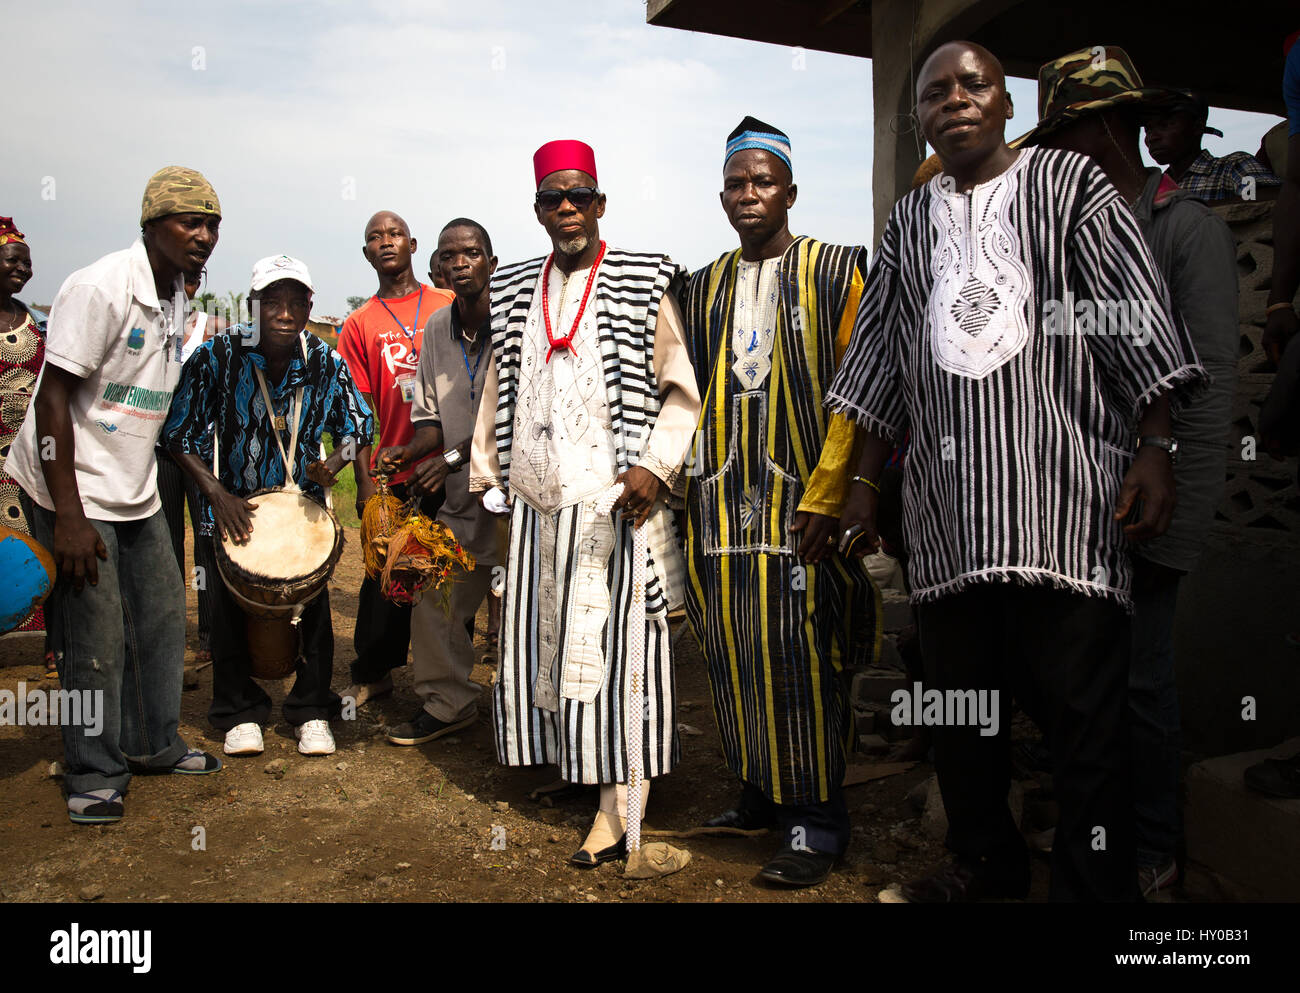 Chief Zanzan Karwa, chairman of the National Council of Chiefs and Elders and the highest Chief in Liberia in red, - Stock Image